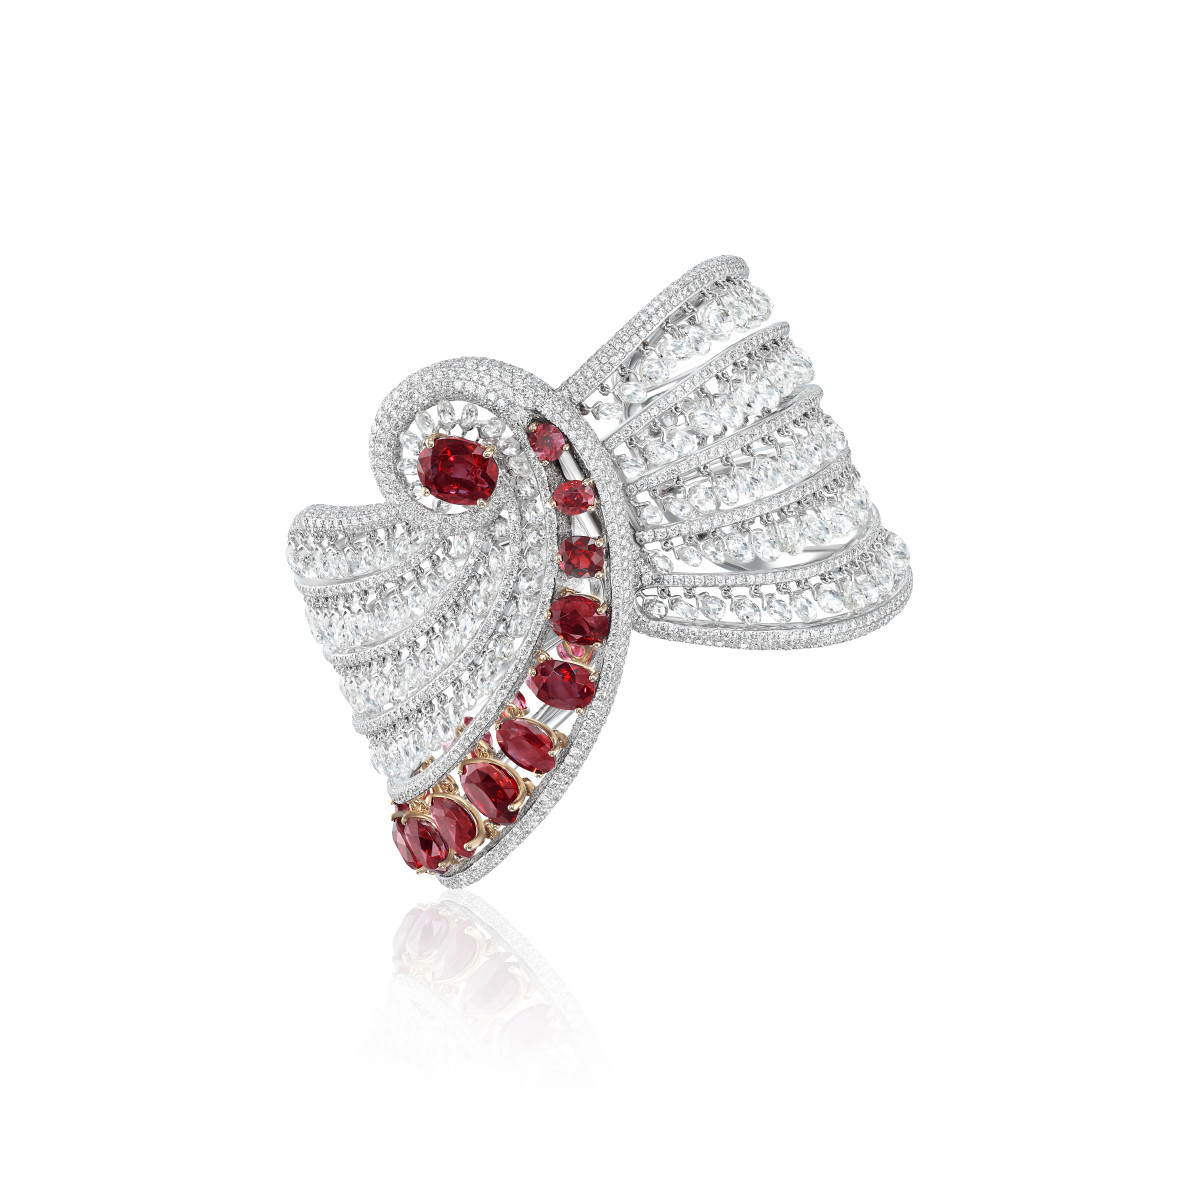 Floating like drapery on the skin, this unusually designed bracelet is adorned with natural Burma rubies and briolette diamonds.